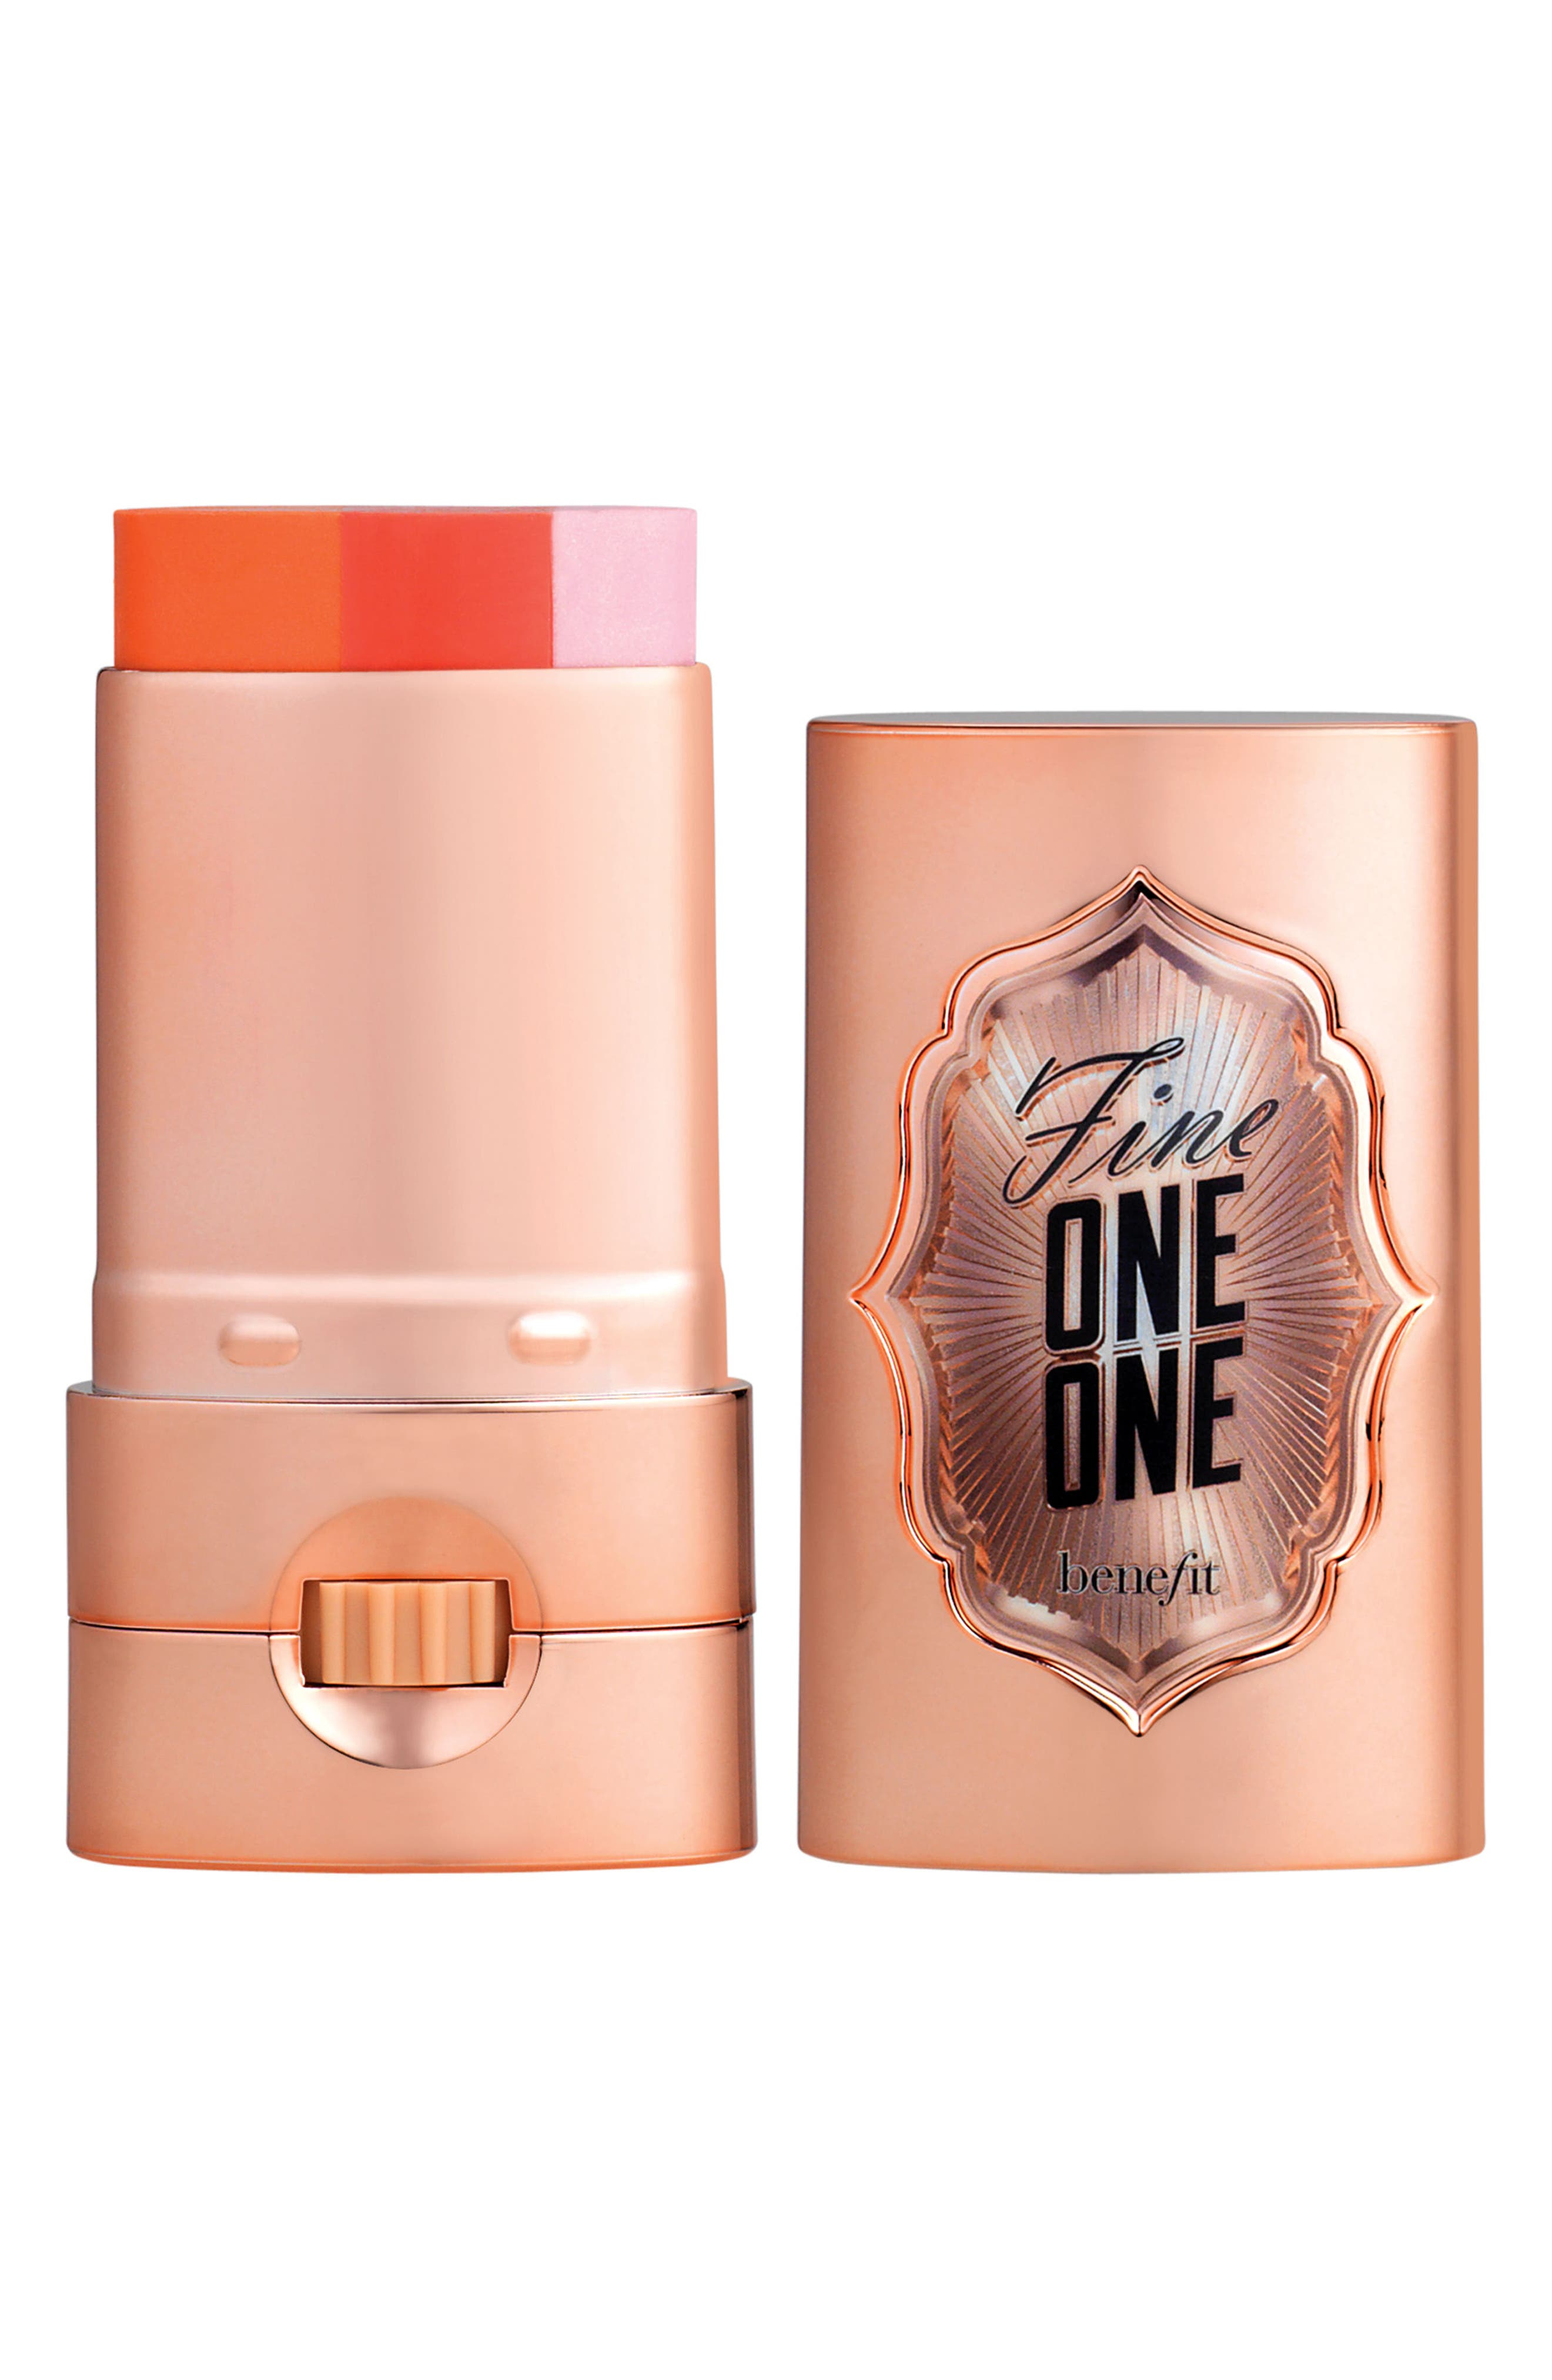 Alternate Image 1 Selected - Benefit Fine-One-One Brightening Color for Cheeks & Lips